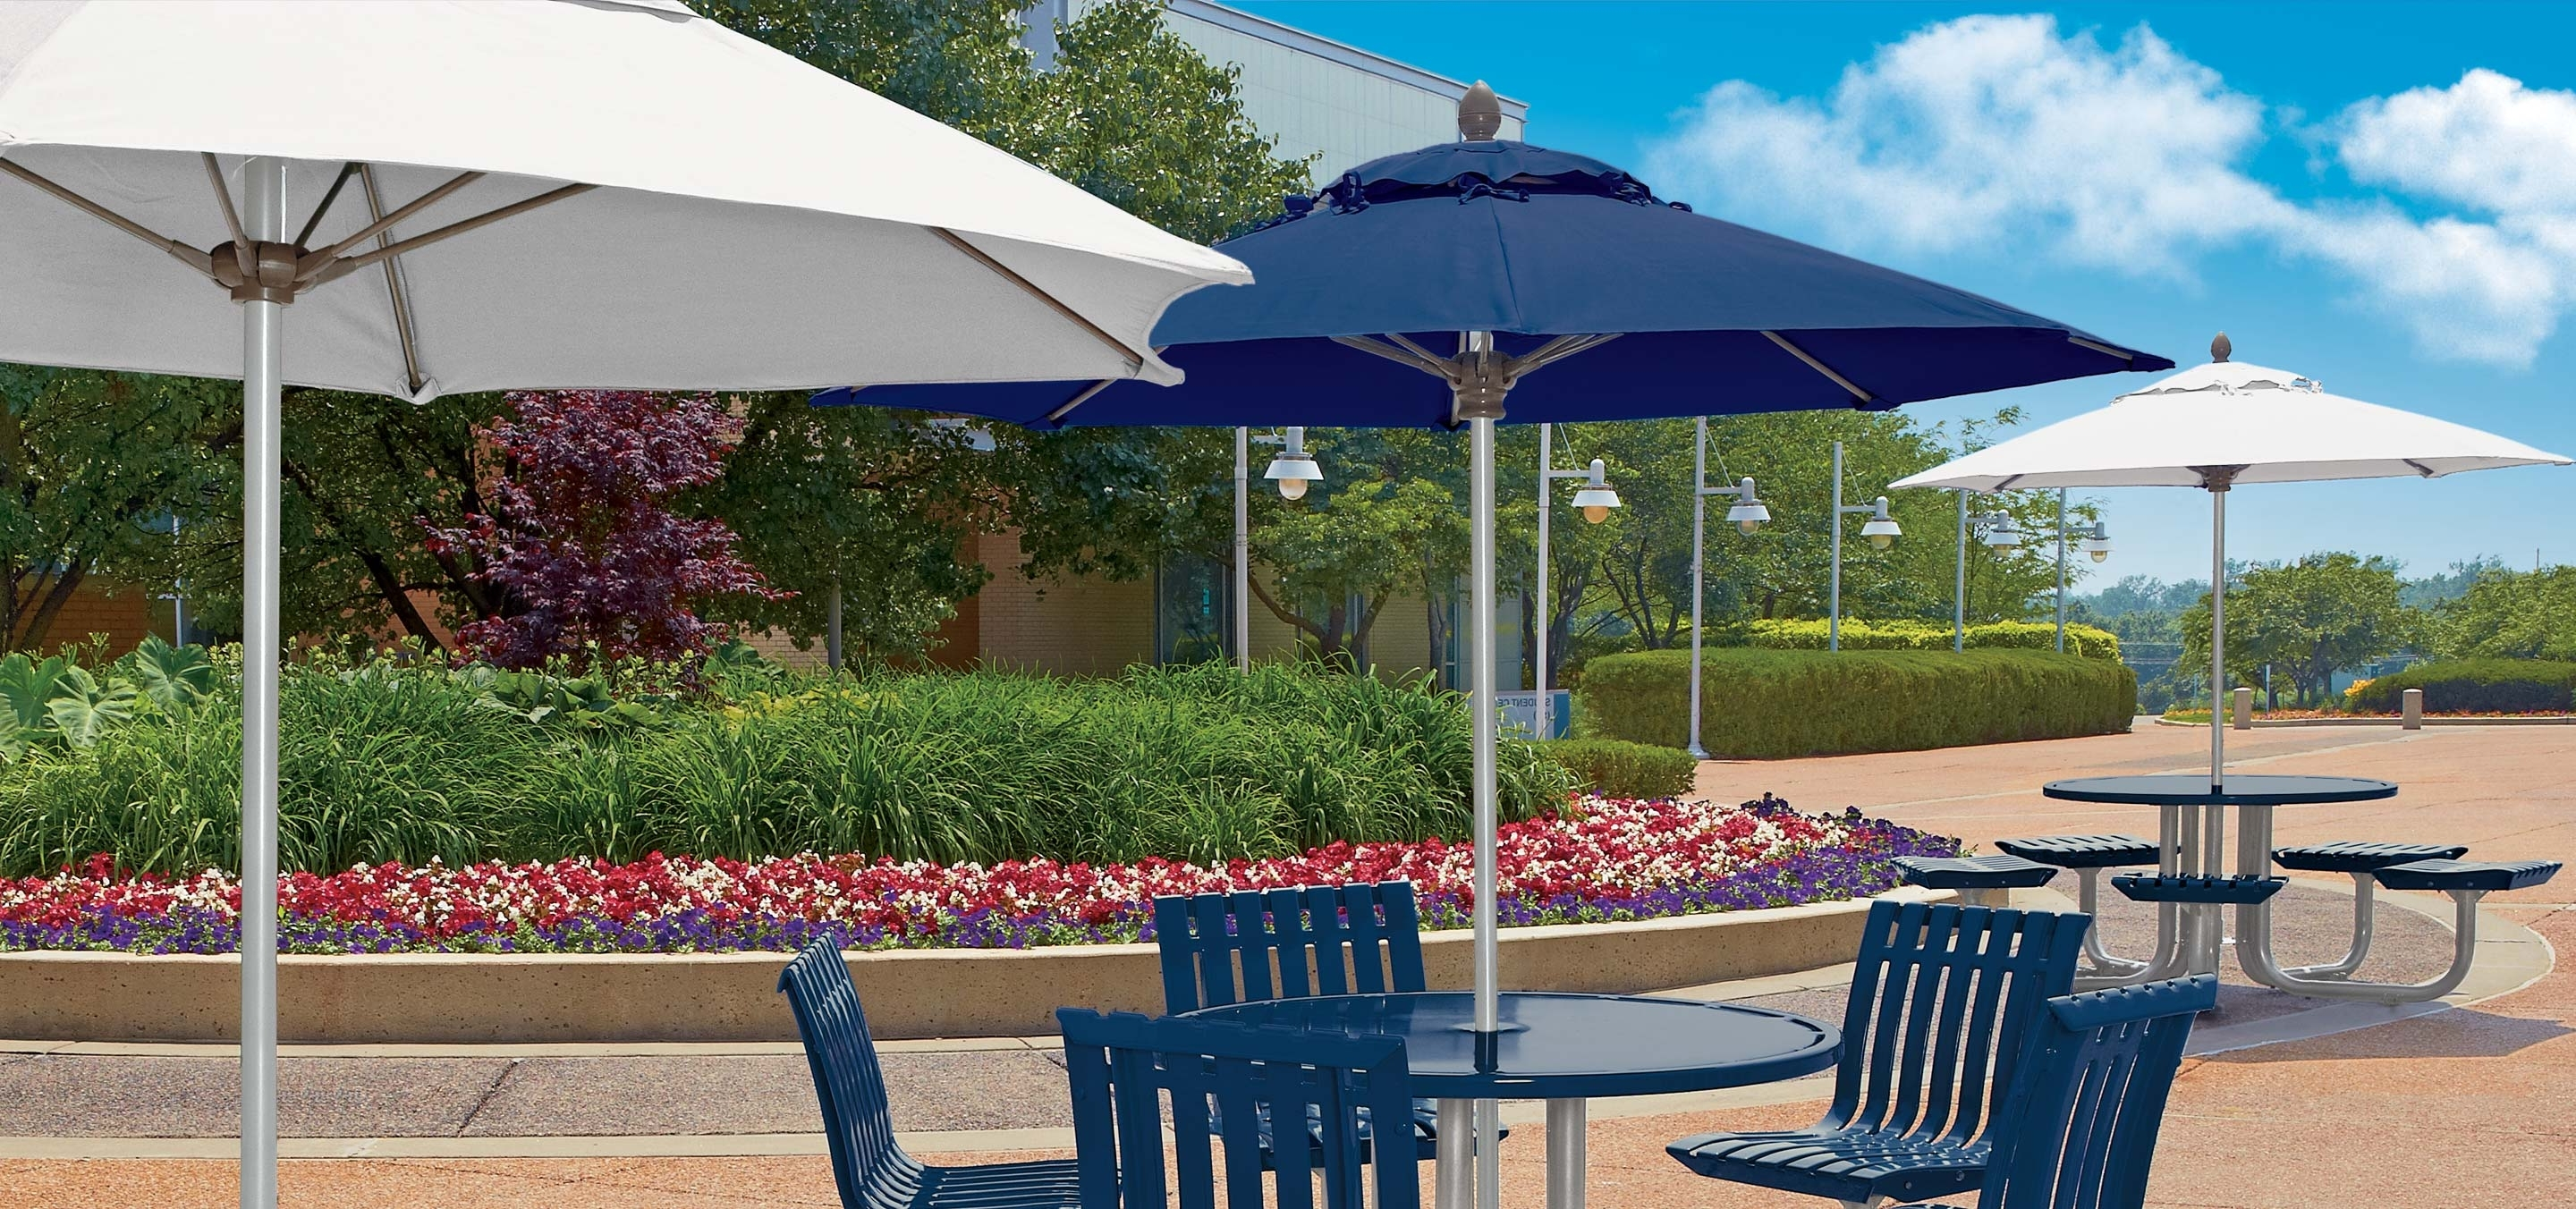 Well Known Patio Umbrellas For High Wind Areas With Umbrellas (View 14 of 20)